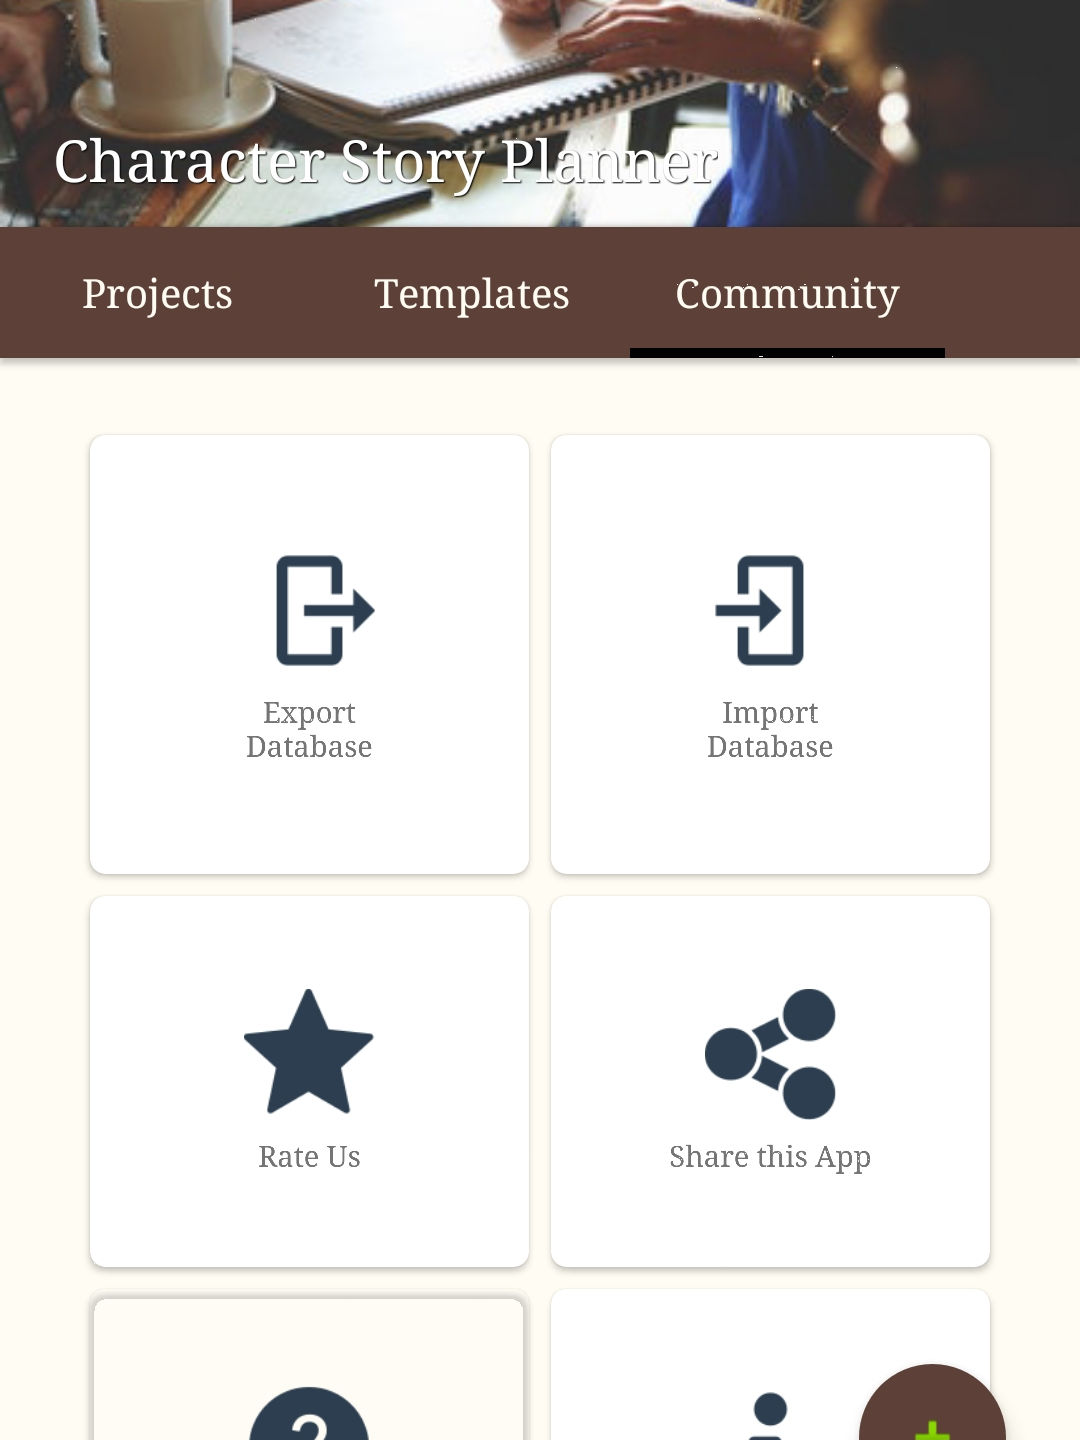 15. Community menu (for shared projects)